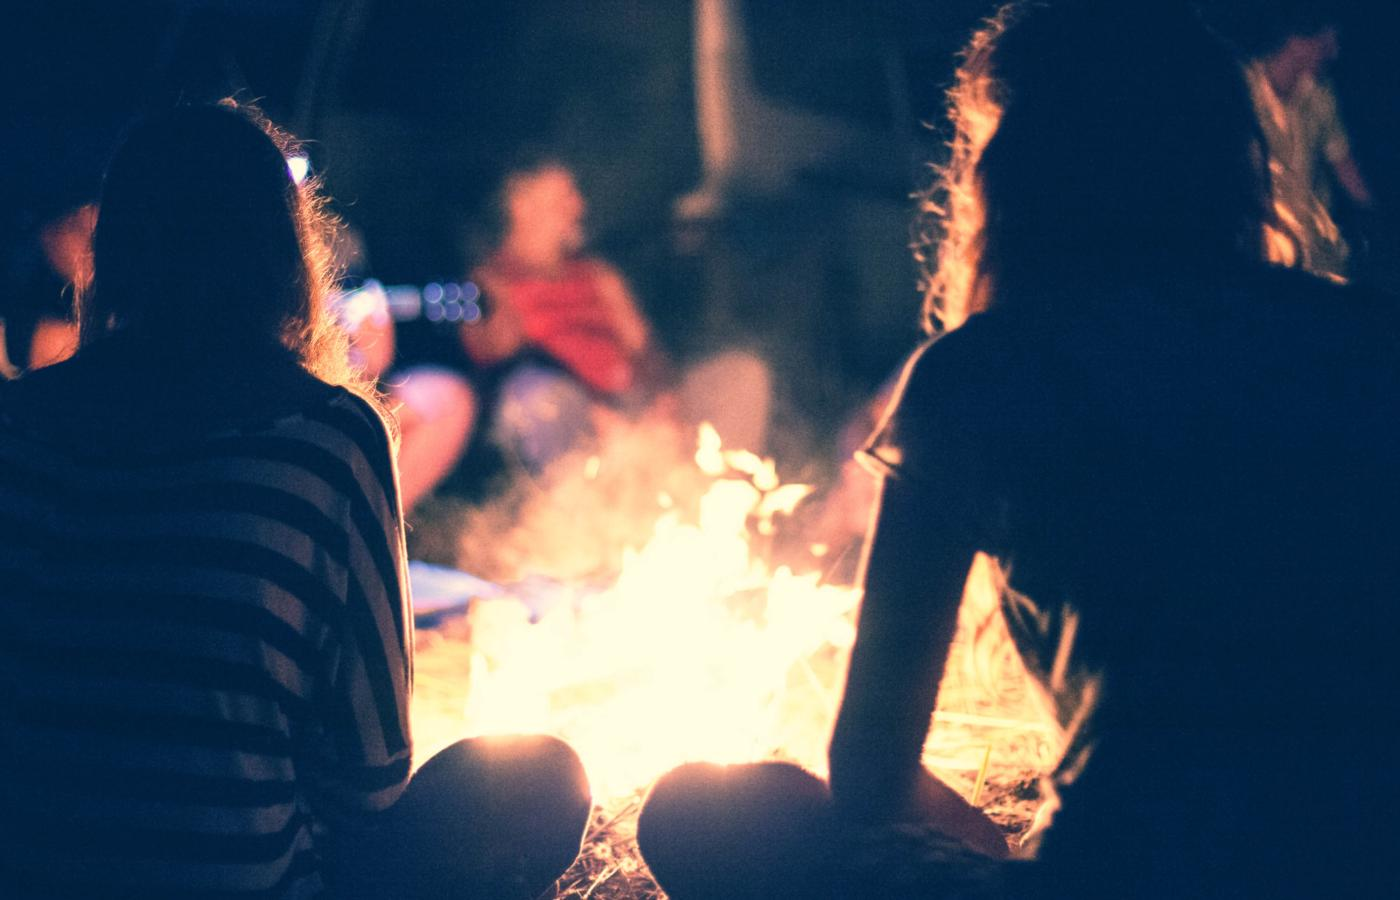 Gather around a fire at the end of a day and share a story about a spectacular day in Canada's Northwest Territories.